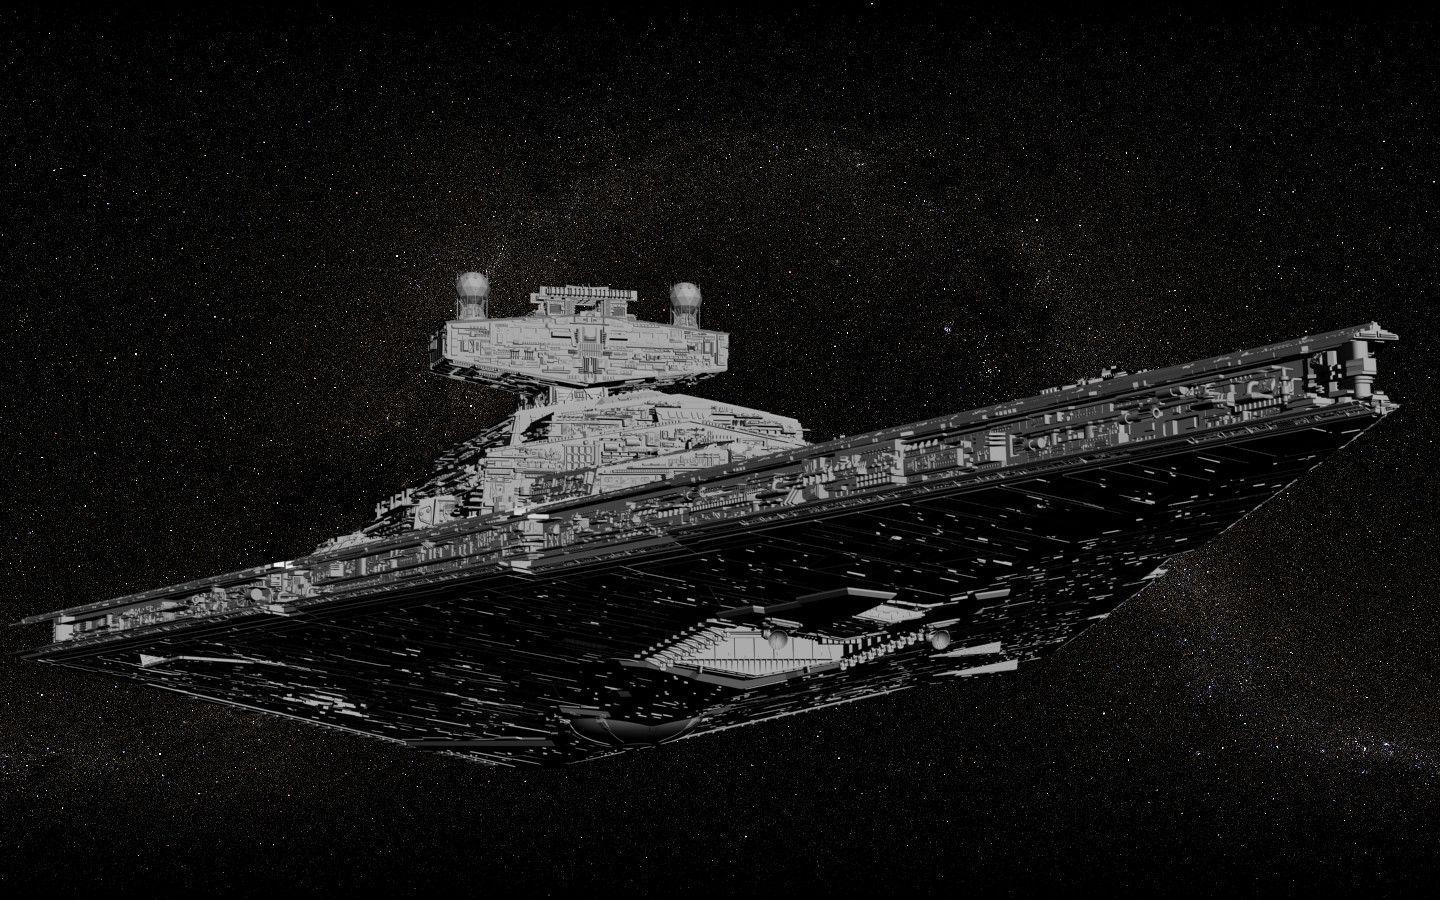 Imperial Star Destroyer HD image